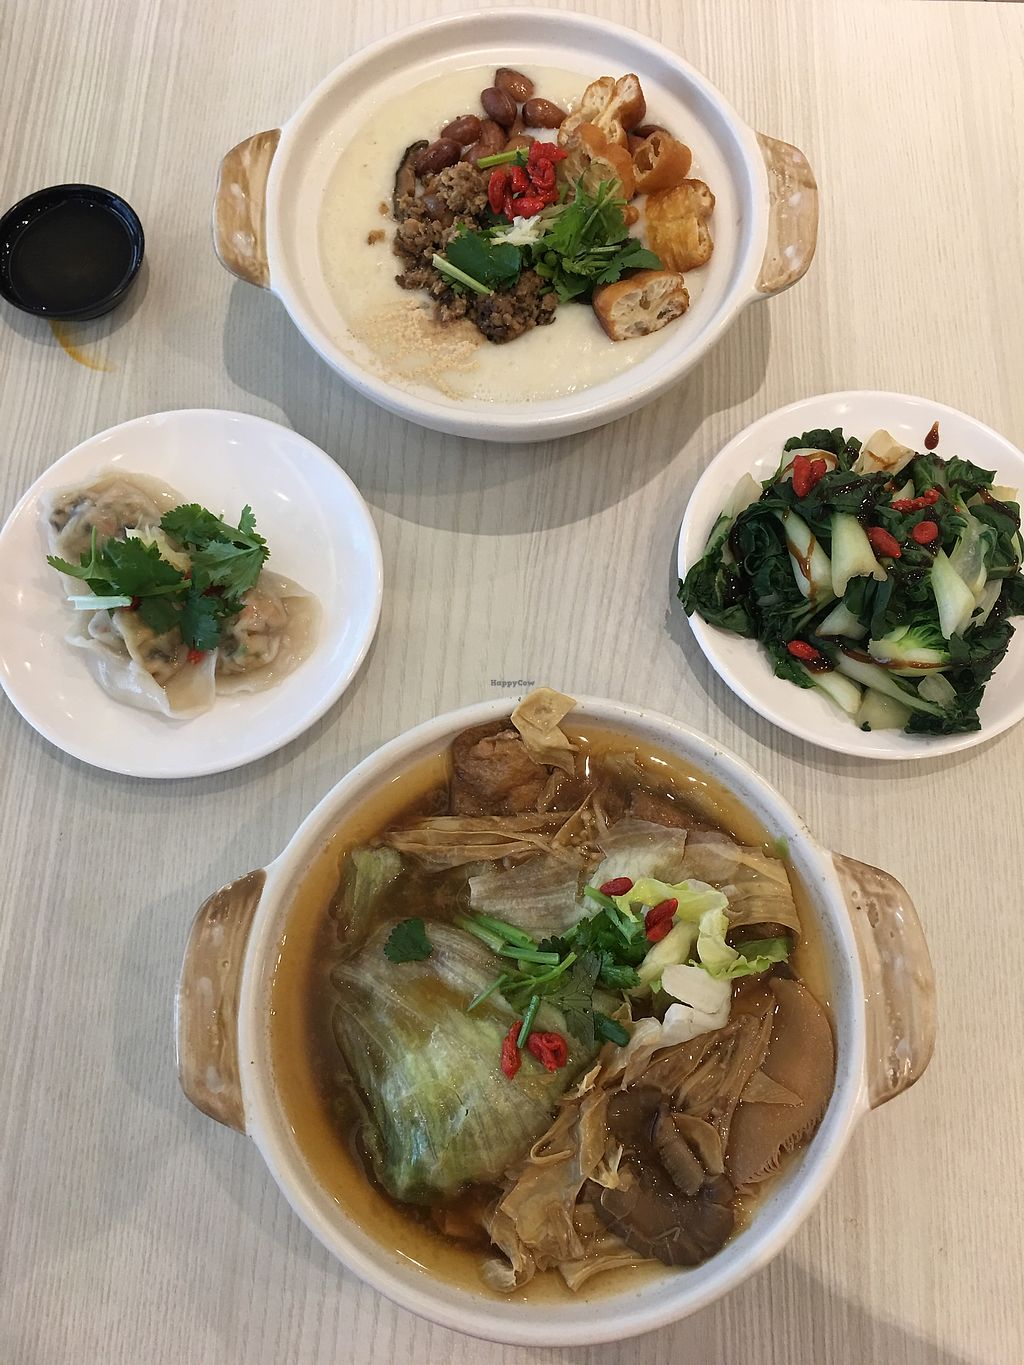 """Photo of Truly Vegetarian  by <a href=""""/members/profile/BernardKoh"""">BernardKoh</a> <br/>Dinner with Mama :) <br/> February 20, 2018  - <a href='/contact/abuse/image/94769/361637'>Report</a>"""